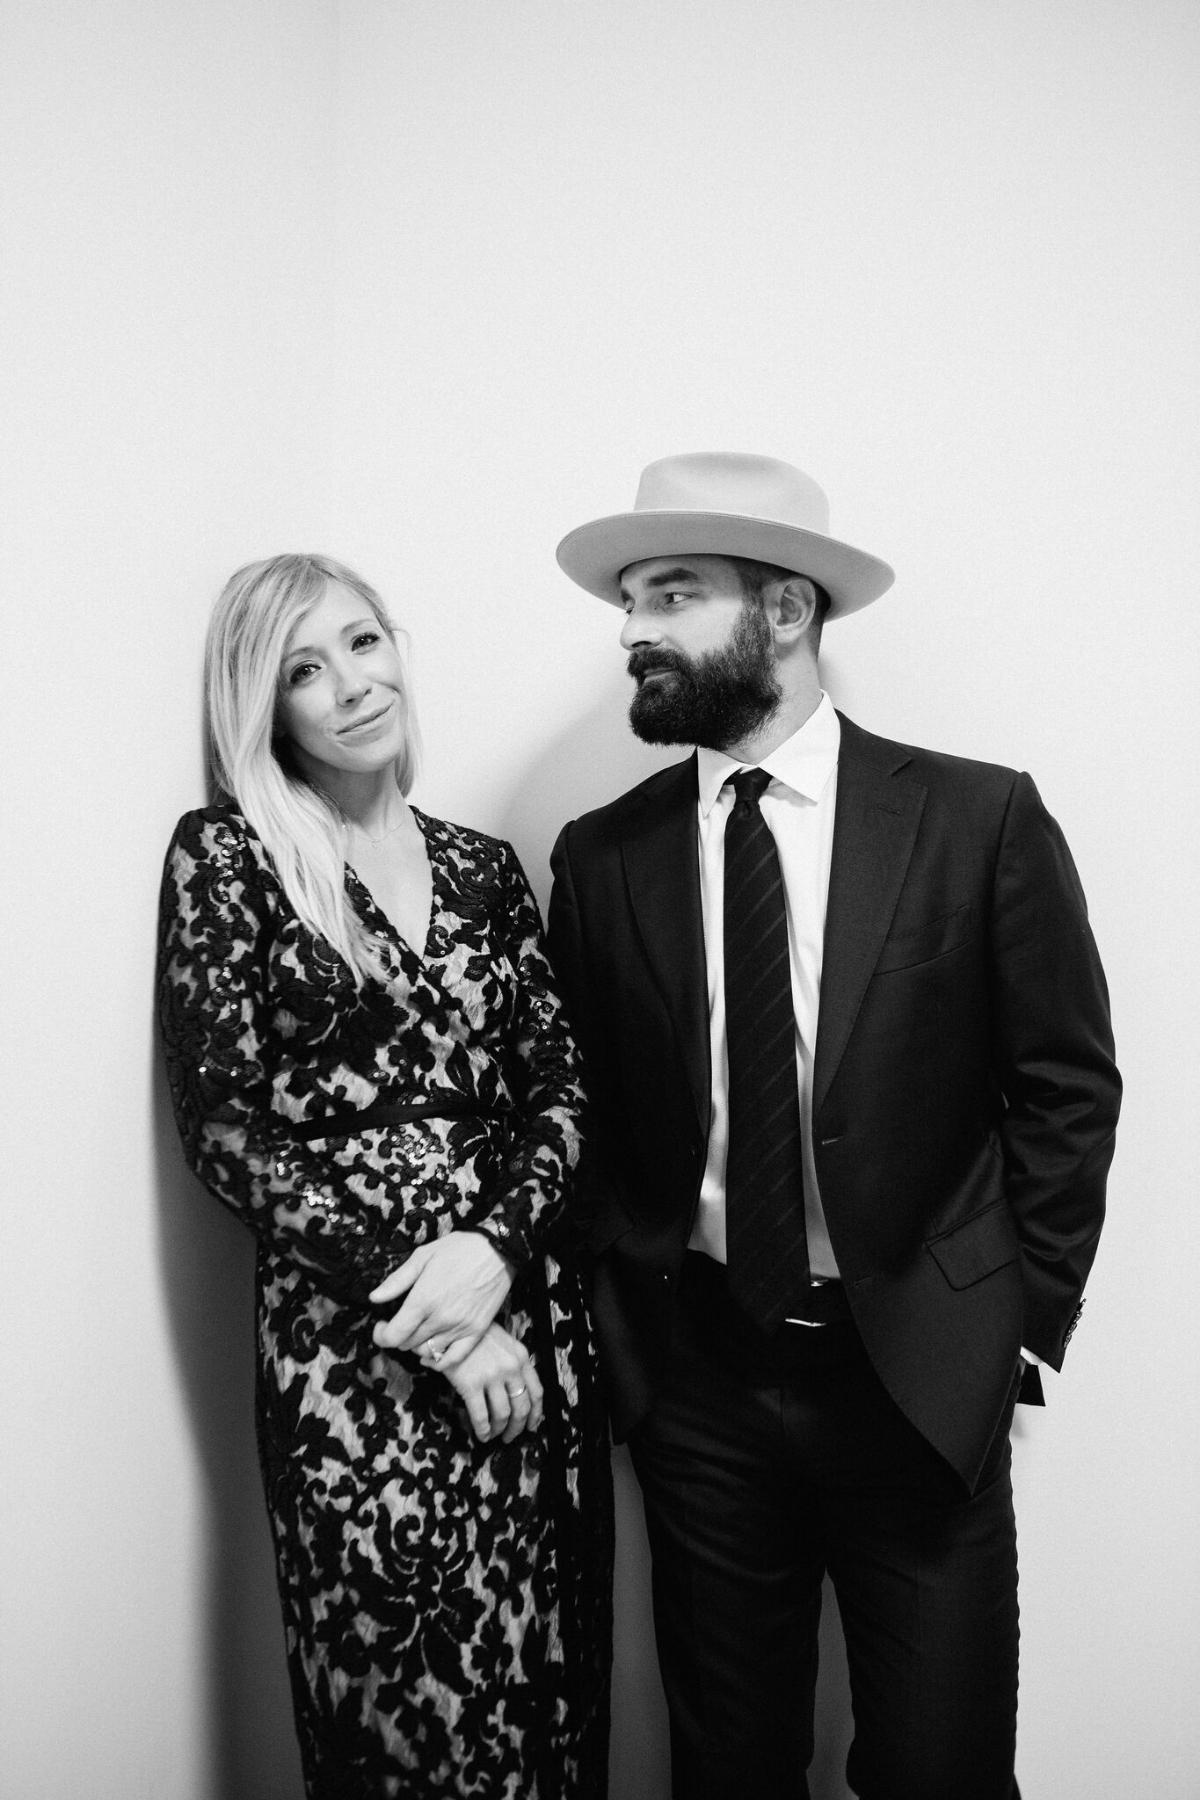 Drew & Ellie Holcomb's You and Me Tour